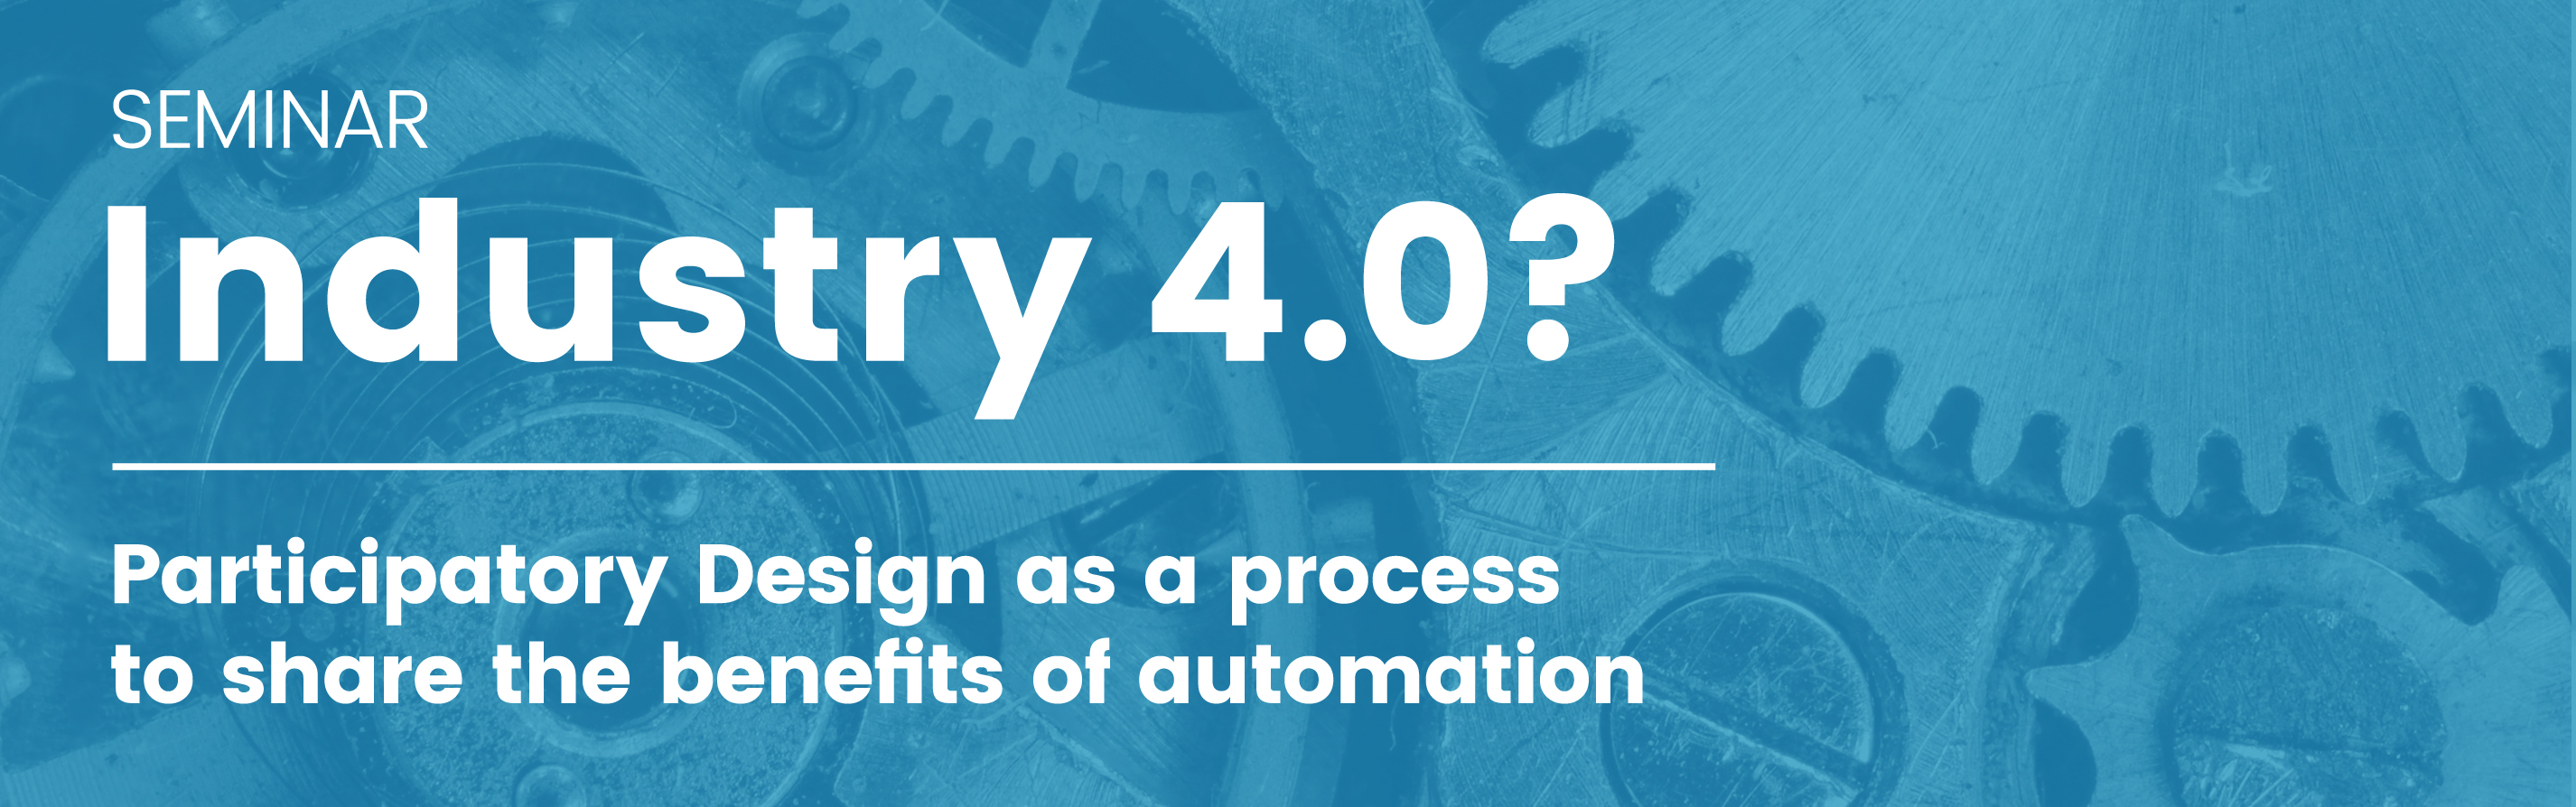 Industry 4.0? Participatory Design as a process to share the benefits of automation